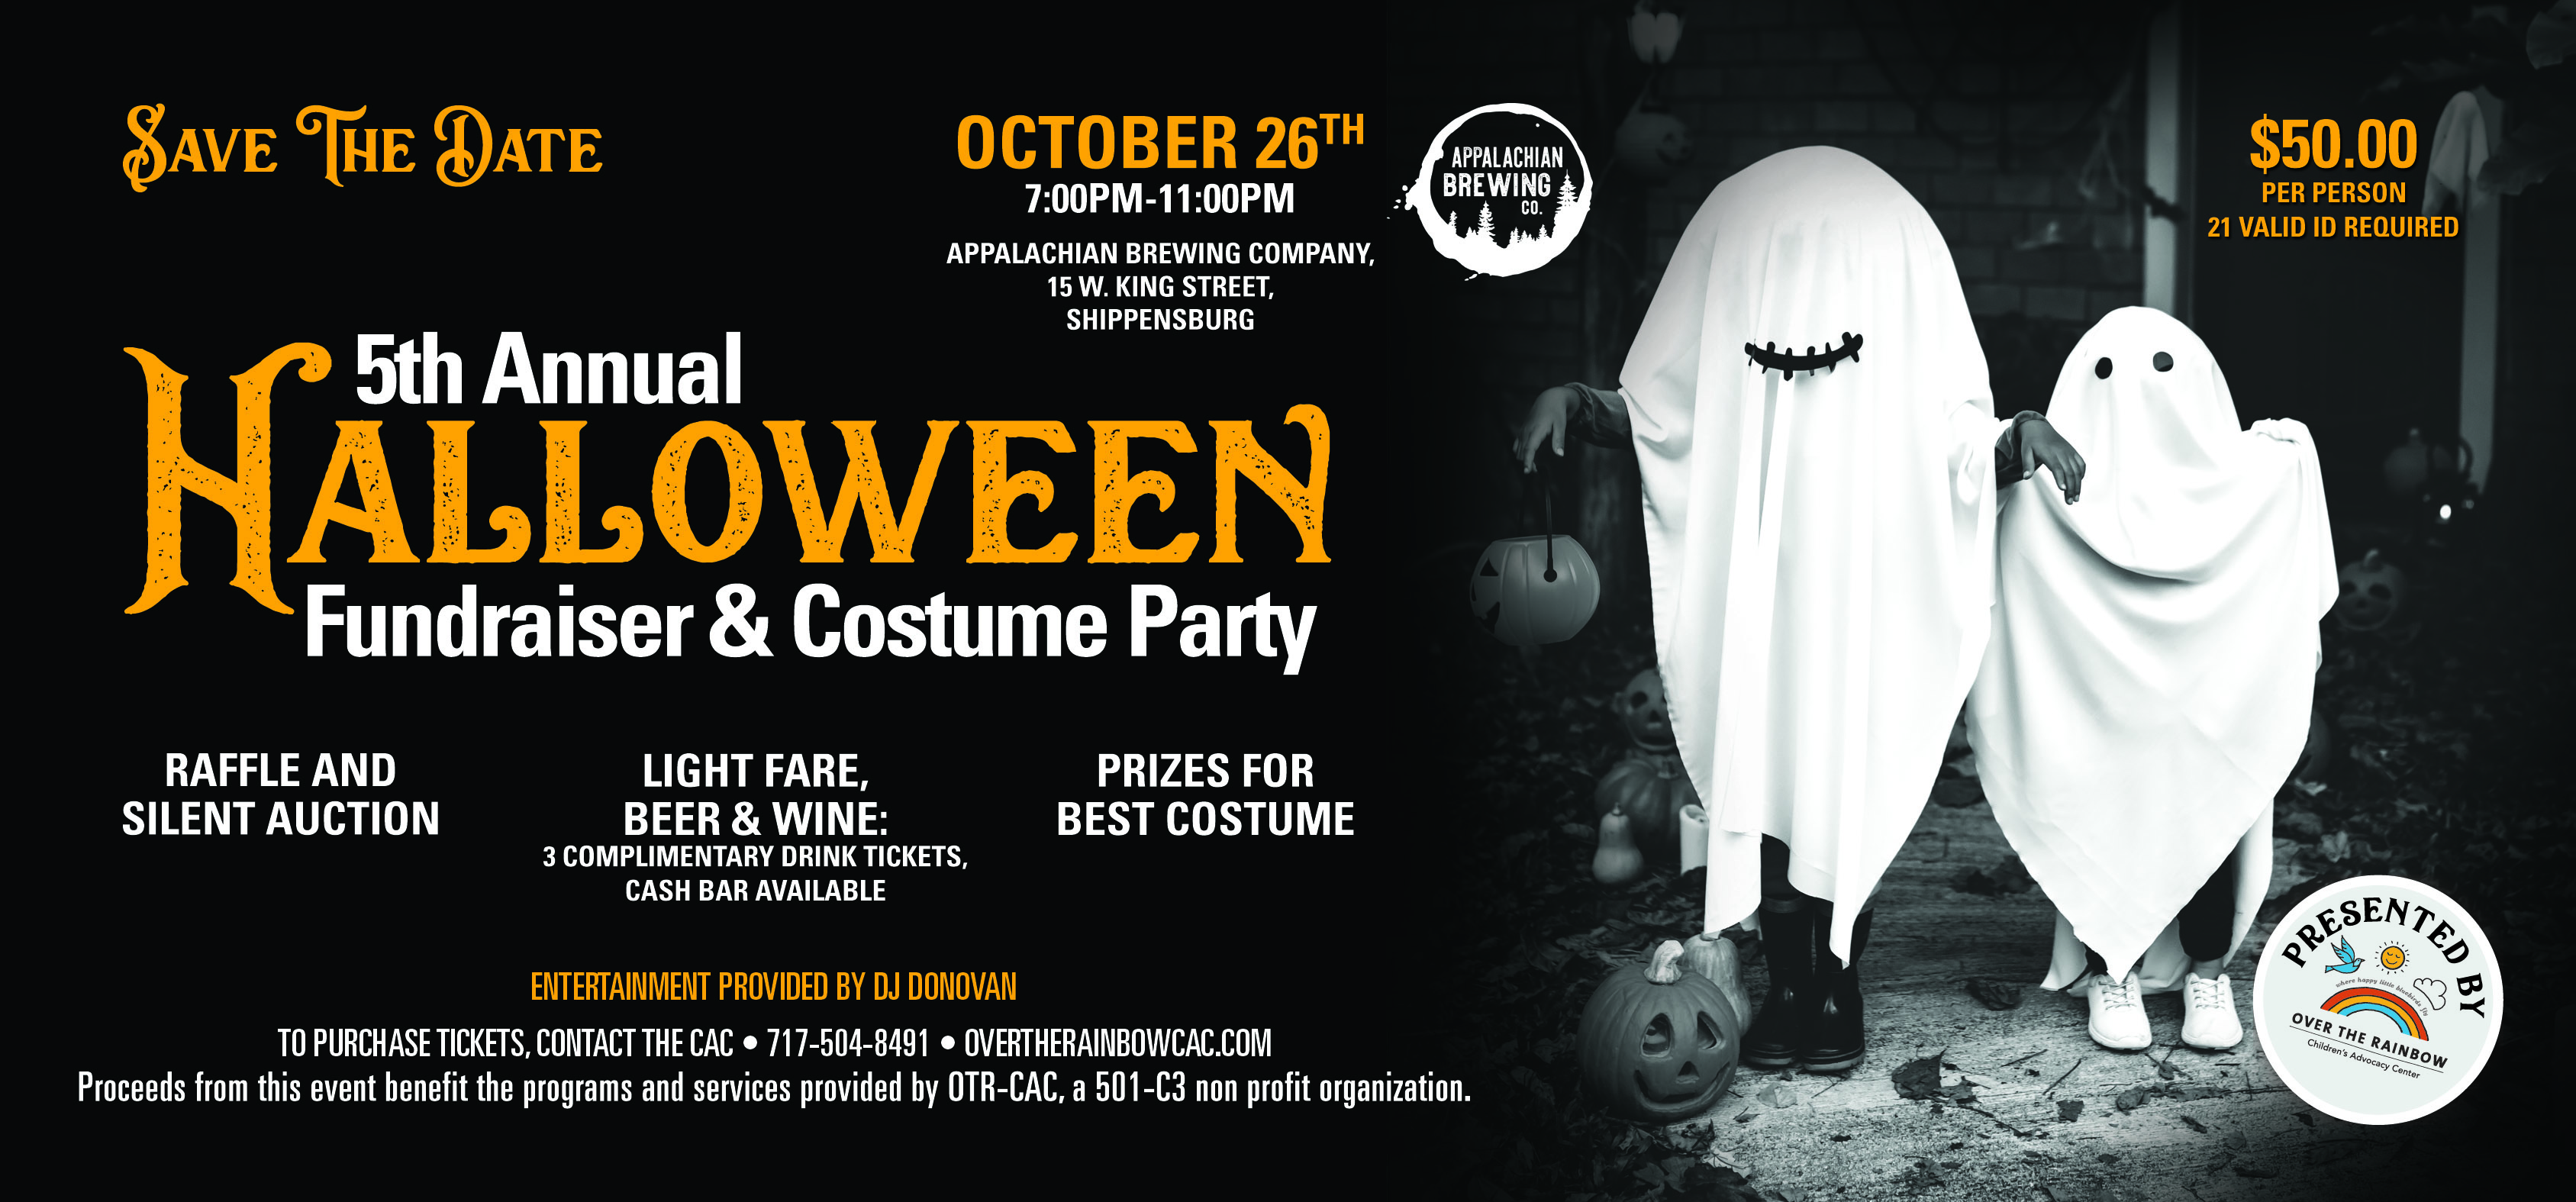 5th Annual Halloween Fundraiser & Costume Party is set for October 26th from 7pm - 11pm at Appalachian Brewing Company, 15 W. King Street, Shippensburg! Proceeds benefit Over the Rainbow Children's Advocacy Center. $50.00 per person includes:  Raffle and